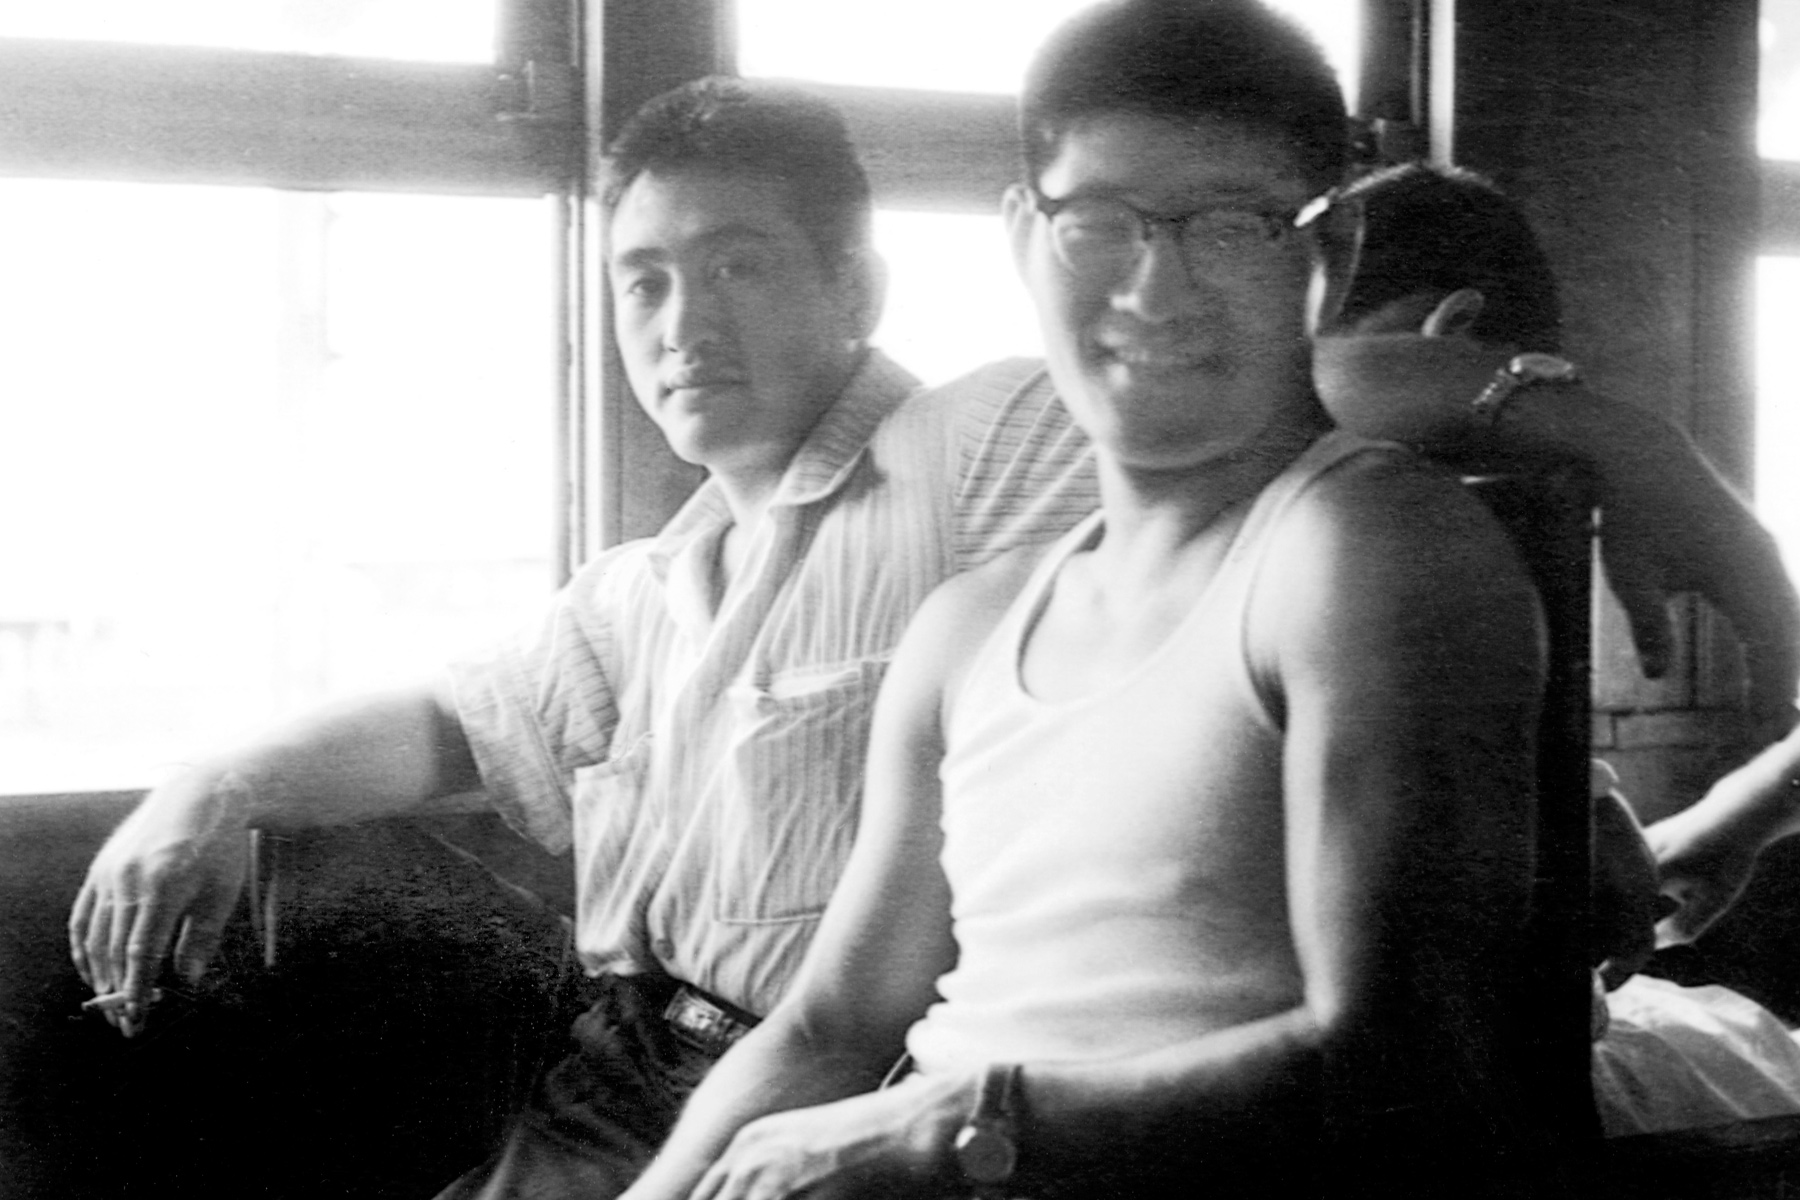 Akinori Hosaka (left) and Yoshisada Yonezuka, on a train travelling to a Judo competition, c.1960